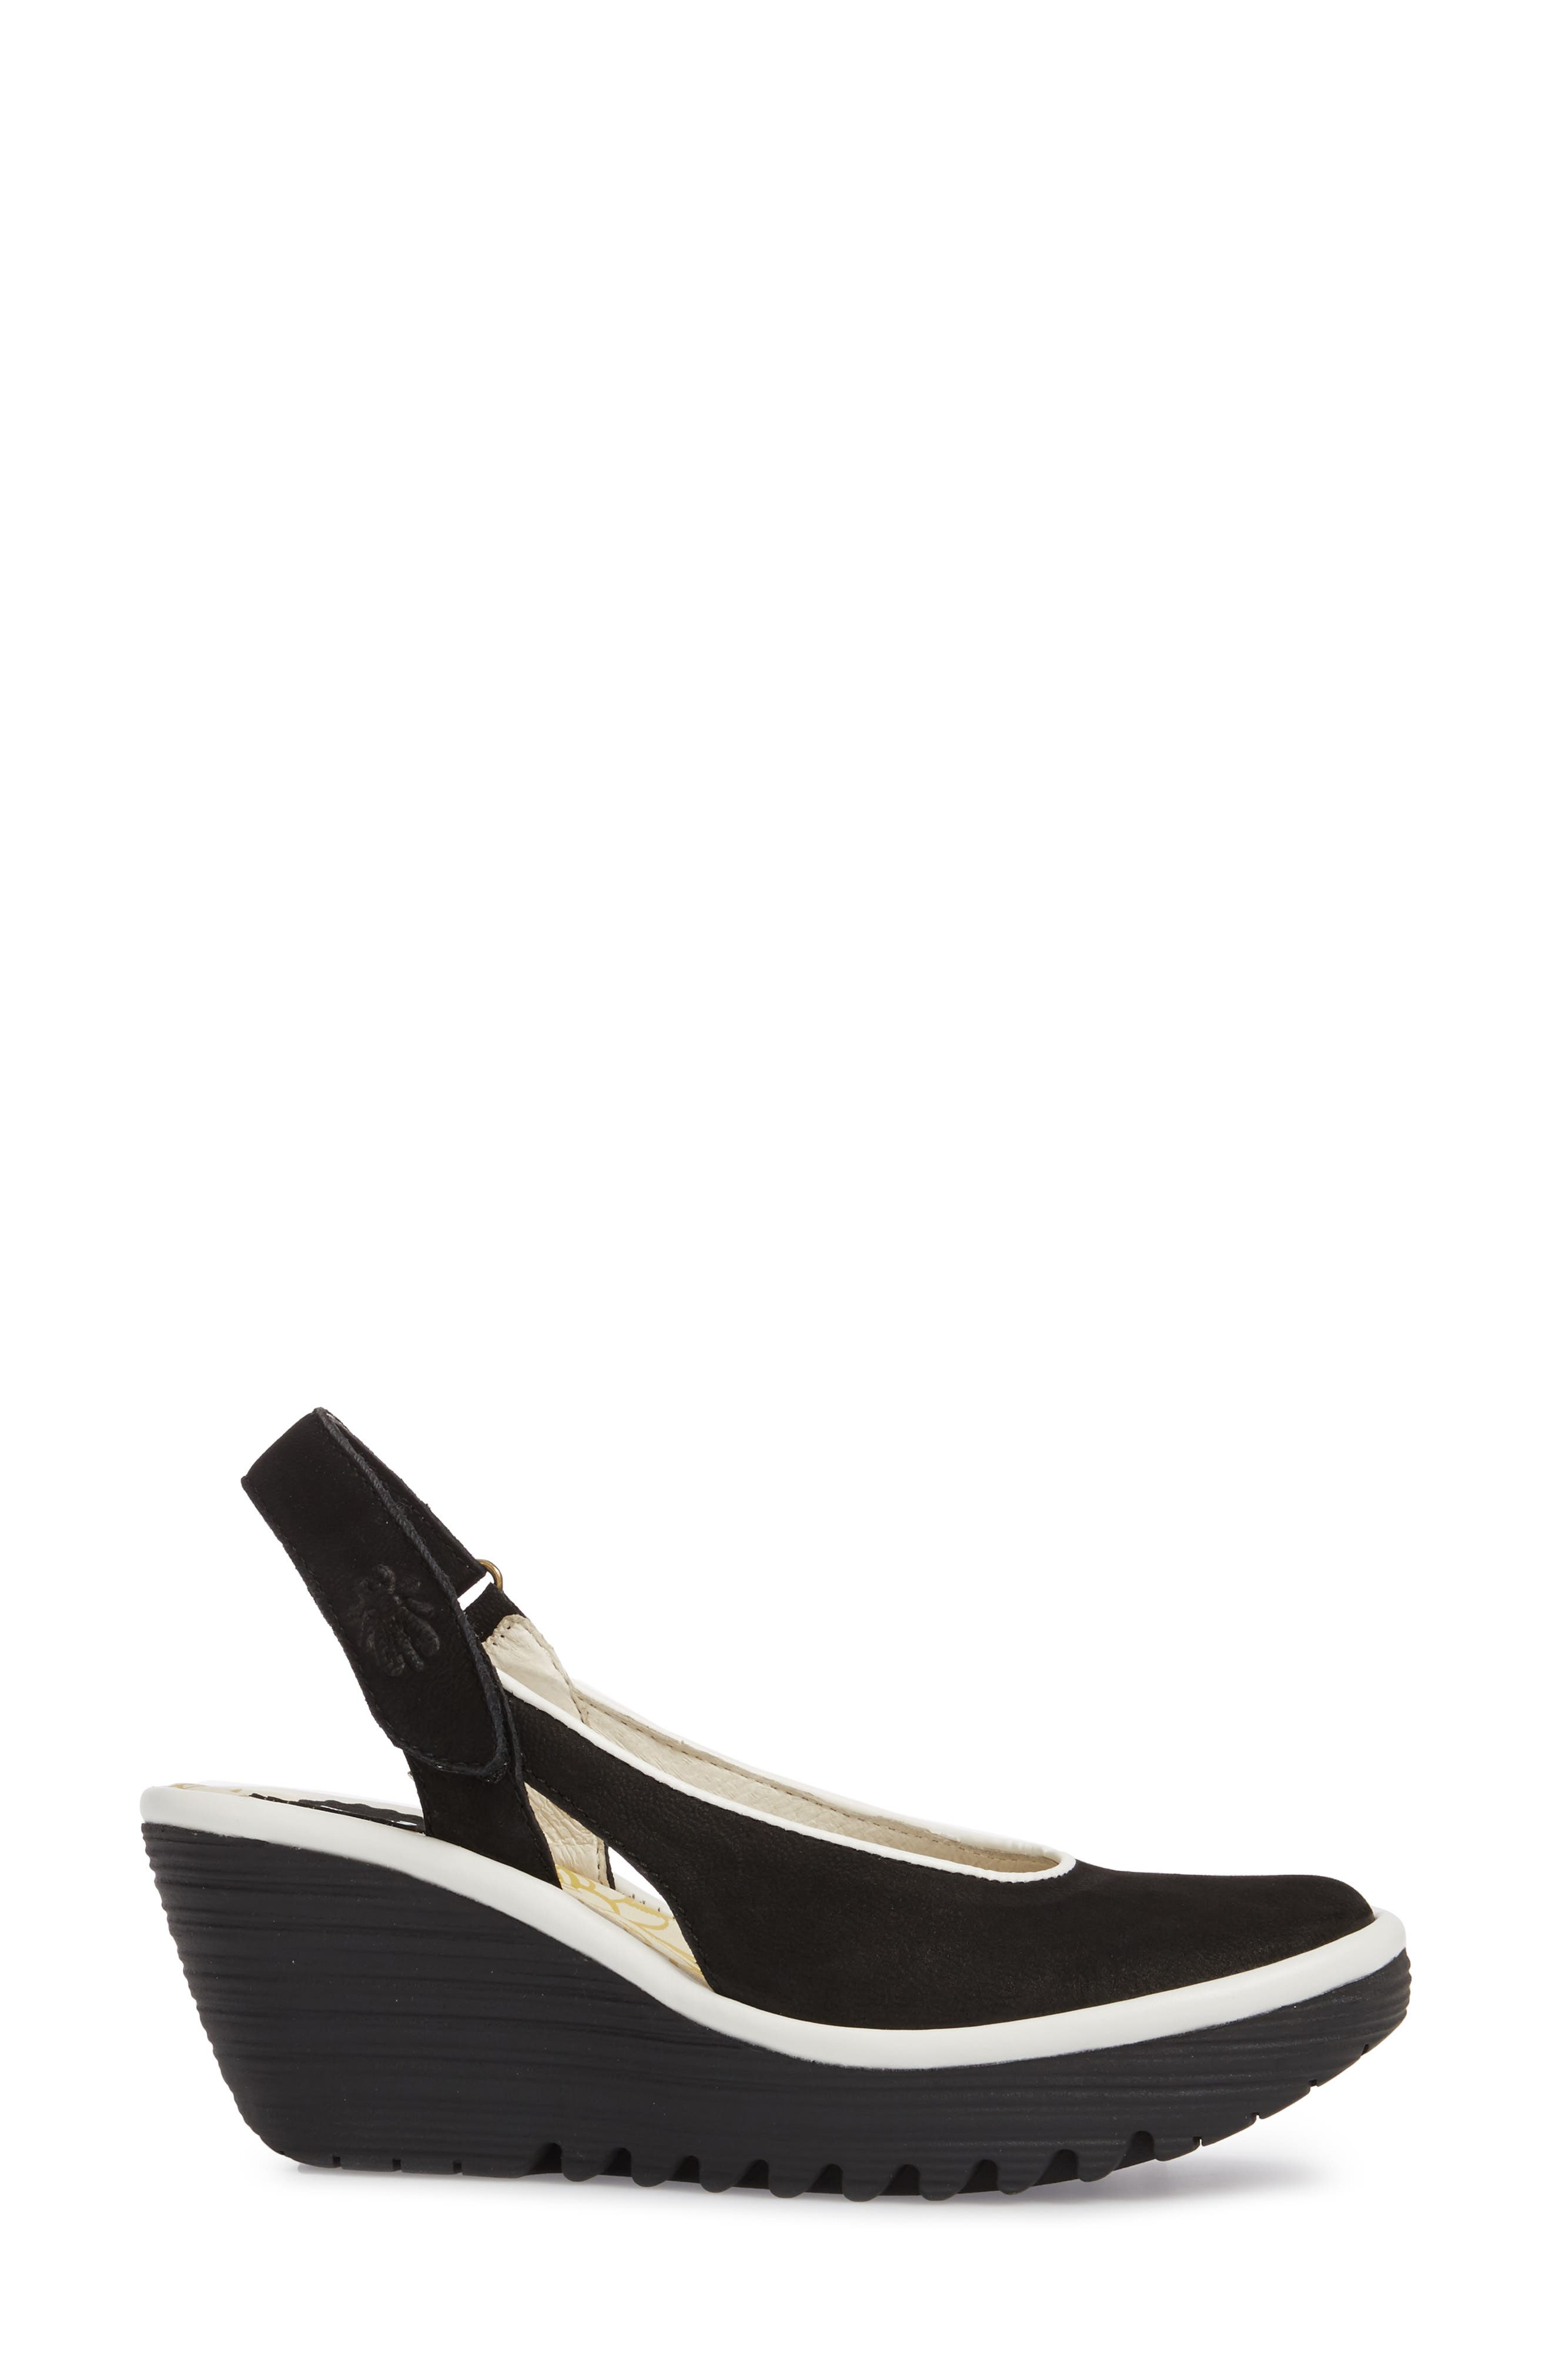 Yipi Wedge Sandal,                             Alternate thumbnail 3, color,                             BLACK/ OFF WHITE MIX LEATHER